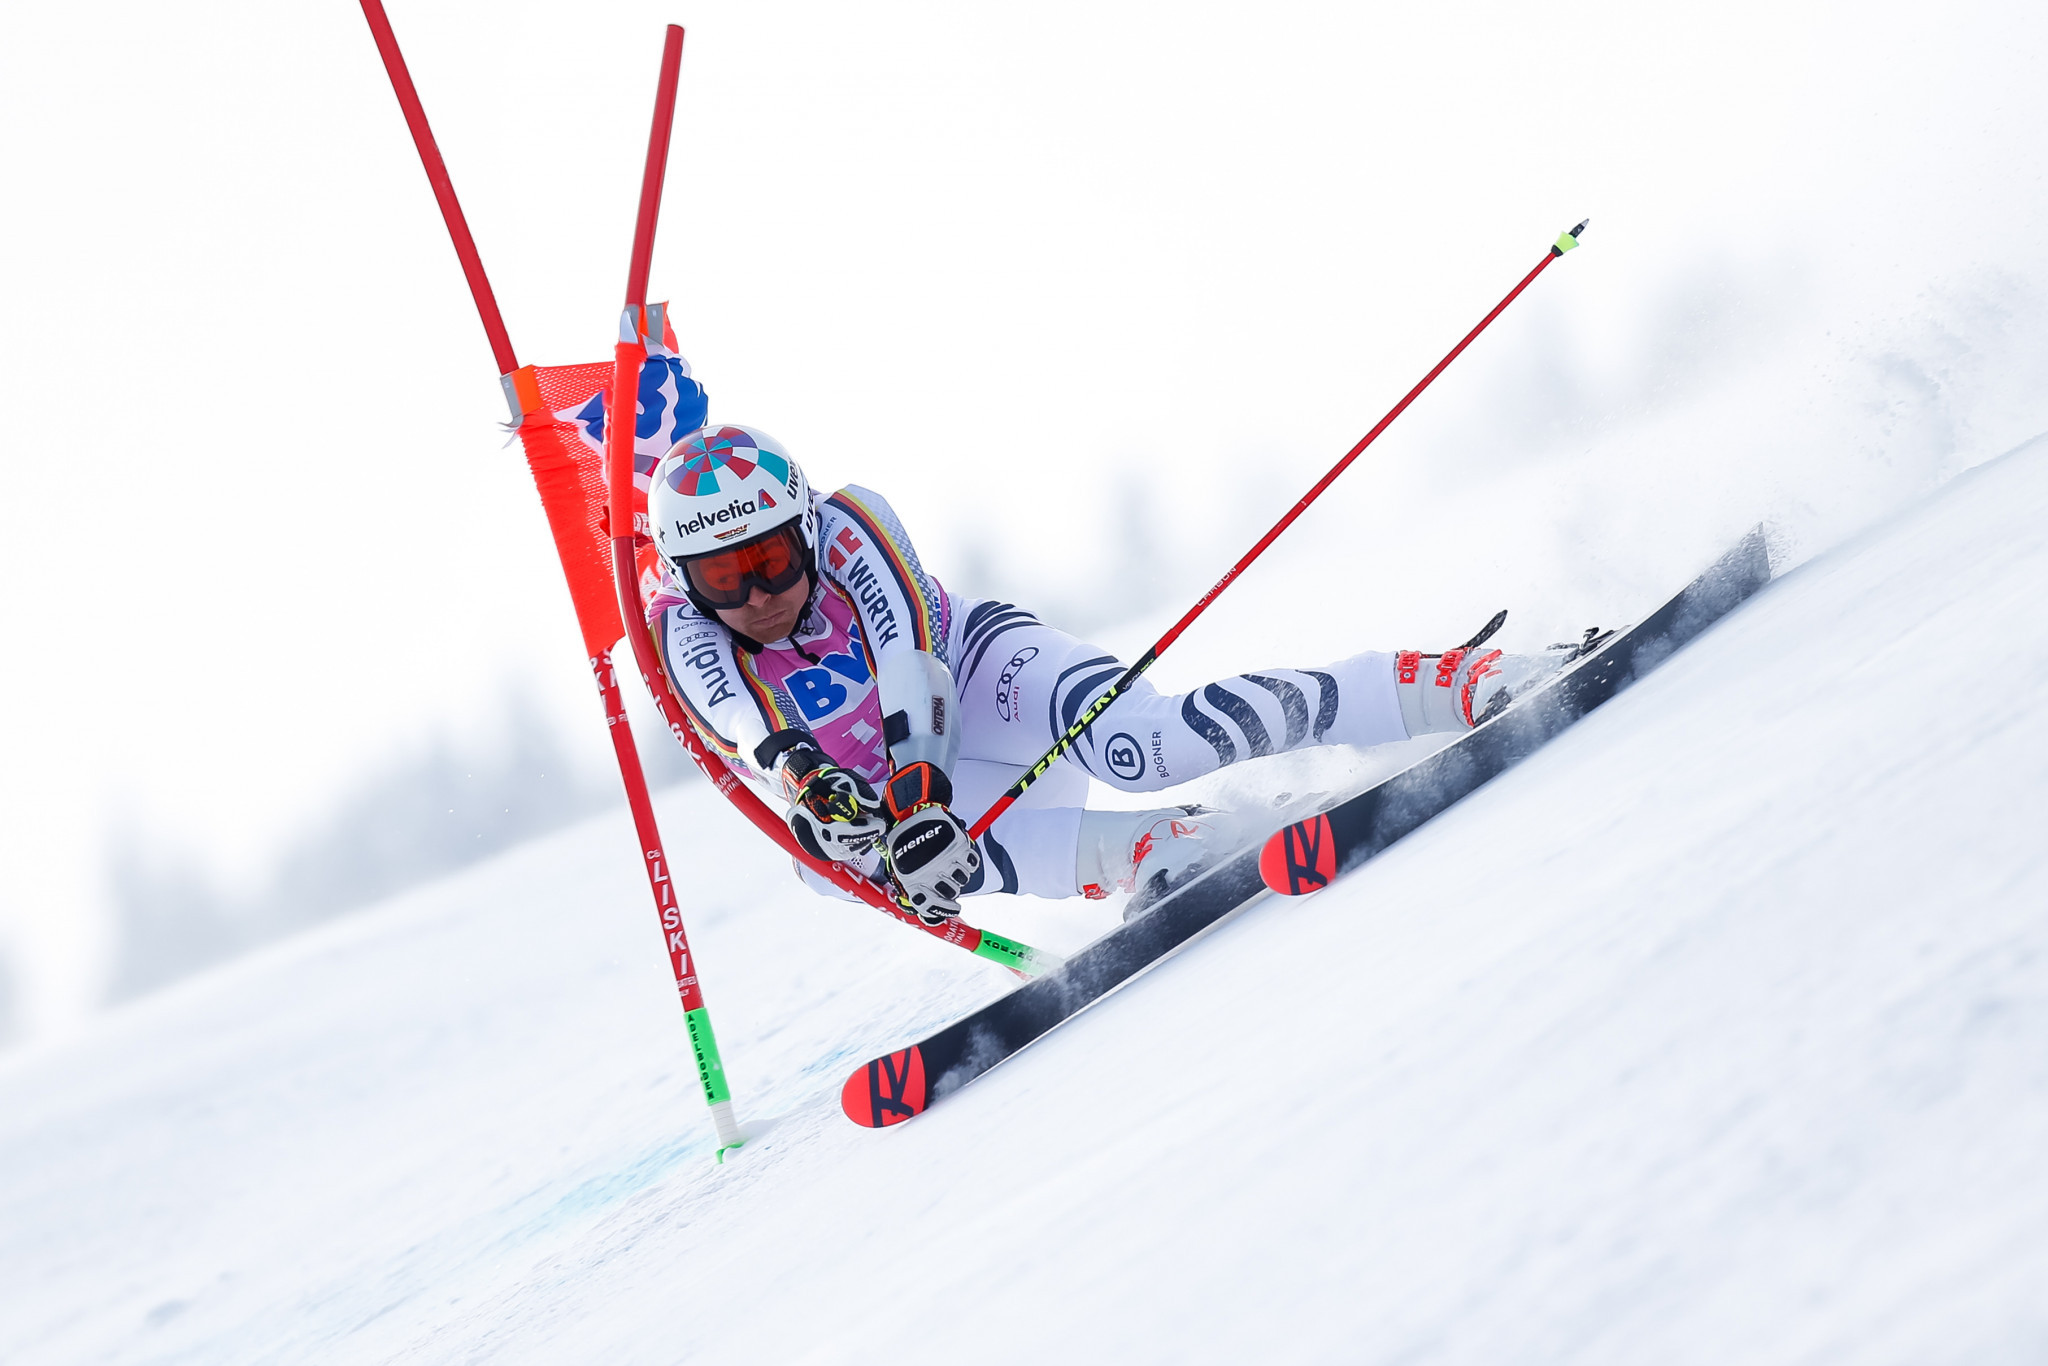 The loss of the initial appeal meant the 100 points awarded for a World Cup win were not included in Stefan Luitz's total, impacting his start position in Adelboden ©Getty Images